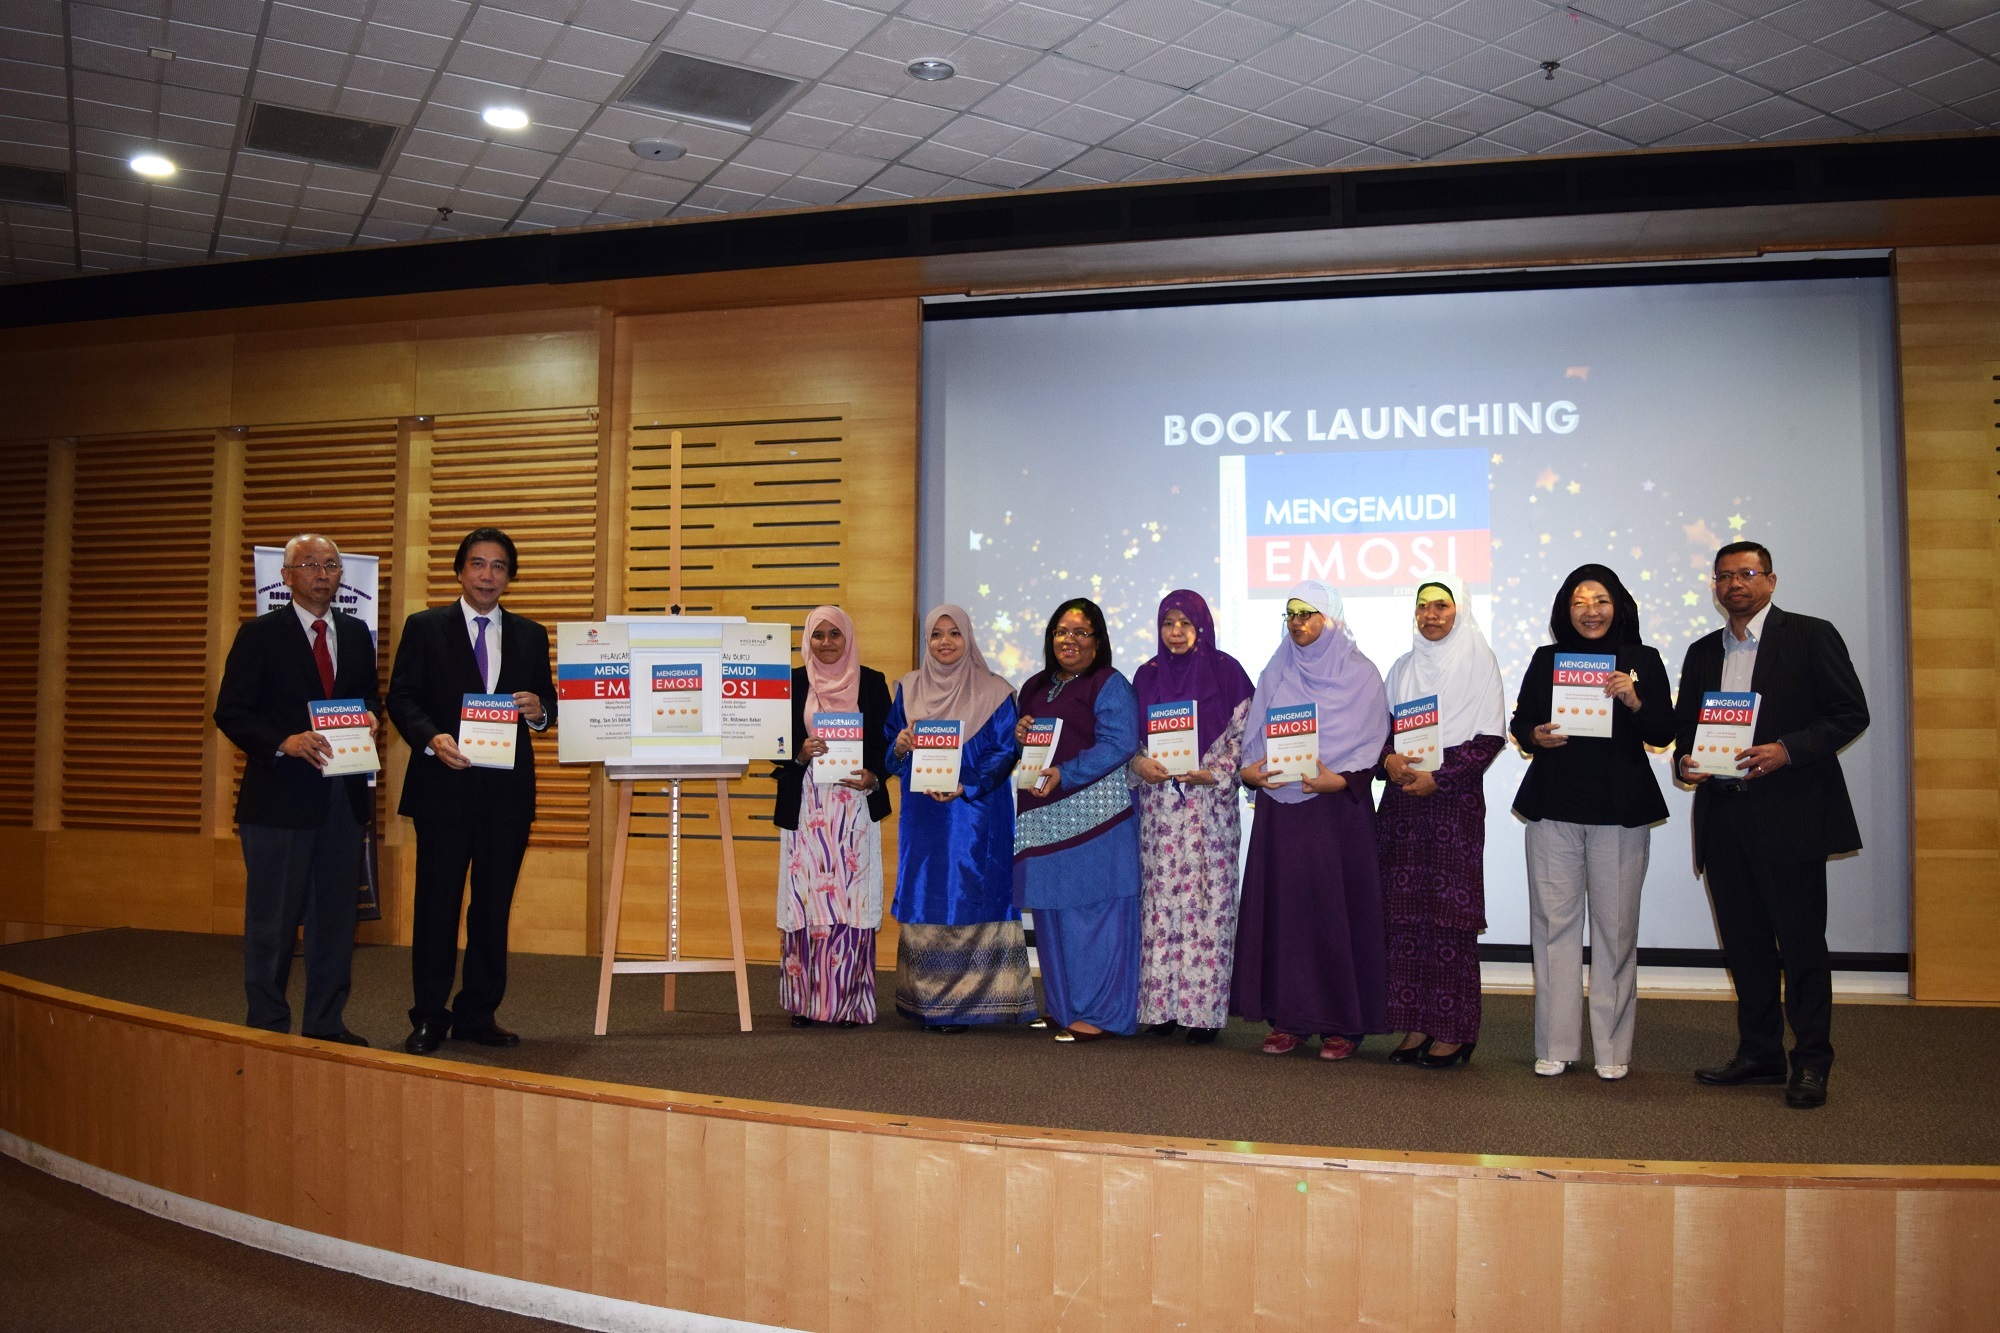 The CEO of ITBM, Mr Mohd Khair Ngadiron, YBhg. Tan Sri Datuk Dr. Ridzwan Abu Bakar, Chairman of the Board of Governors CyberjayaUC and Prof. Dato' Dr. Hj Abd Rahim Hj Mohamad with all the translators of the book, 'Mengemudi Emosi'.